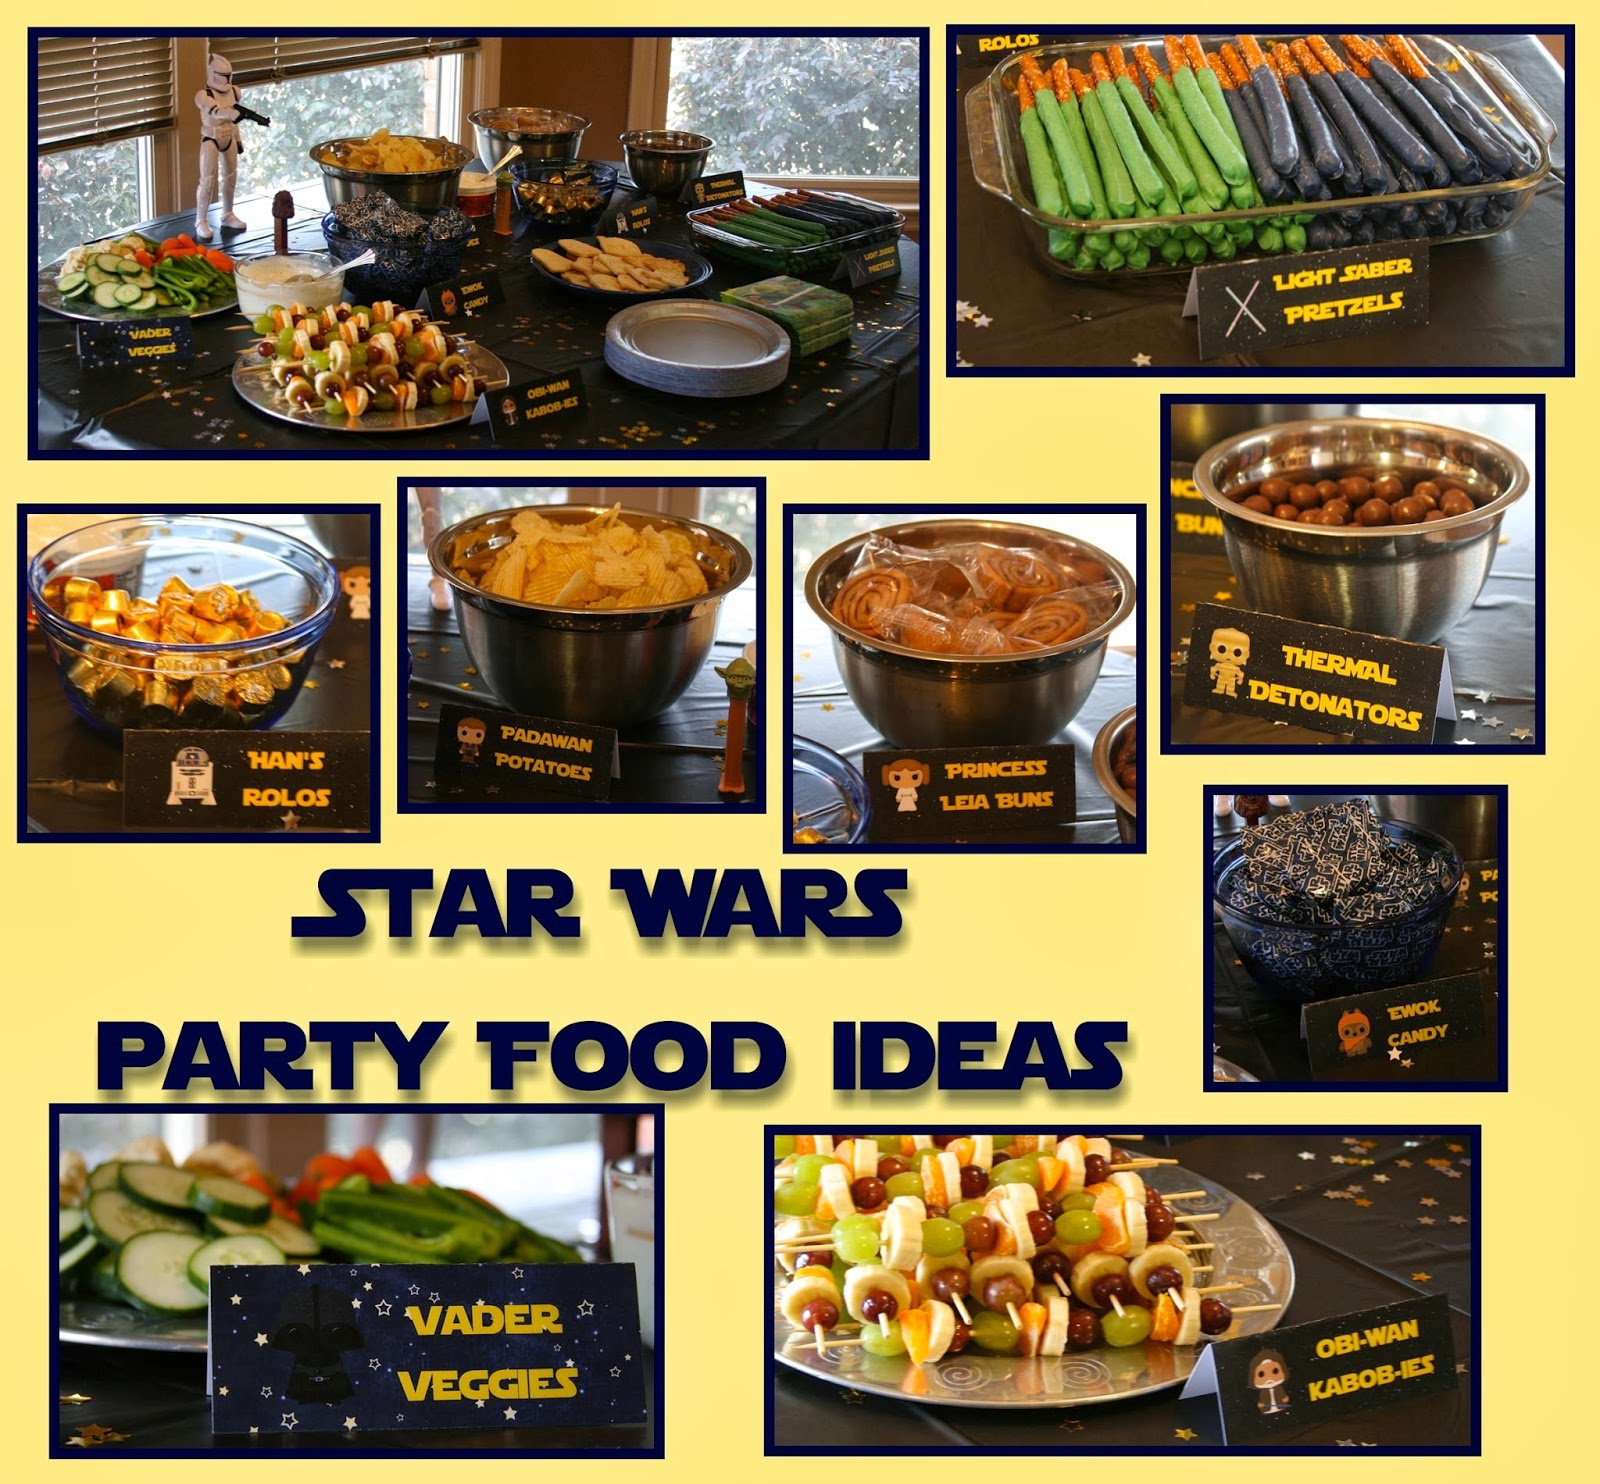 May The Fourth Be With You Party Supplies: Star Wars Birthday Food Ideas